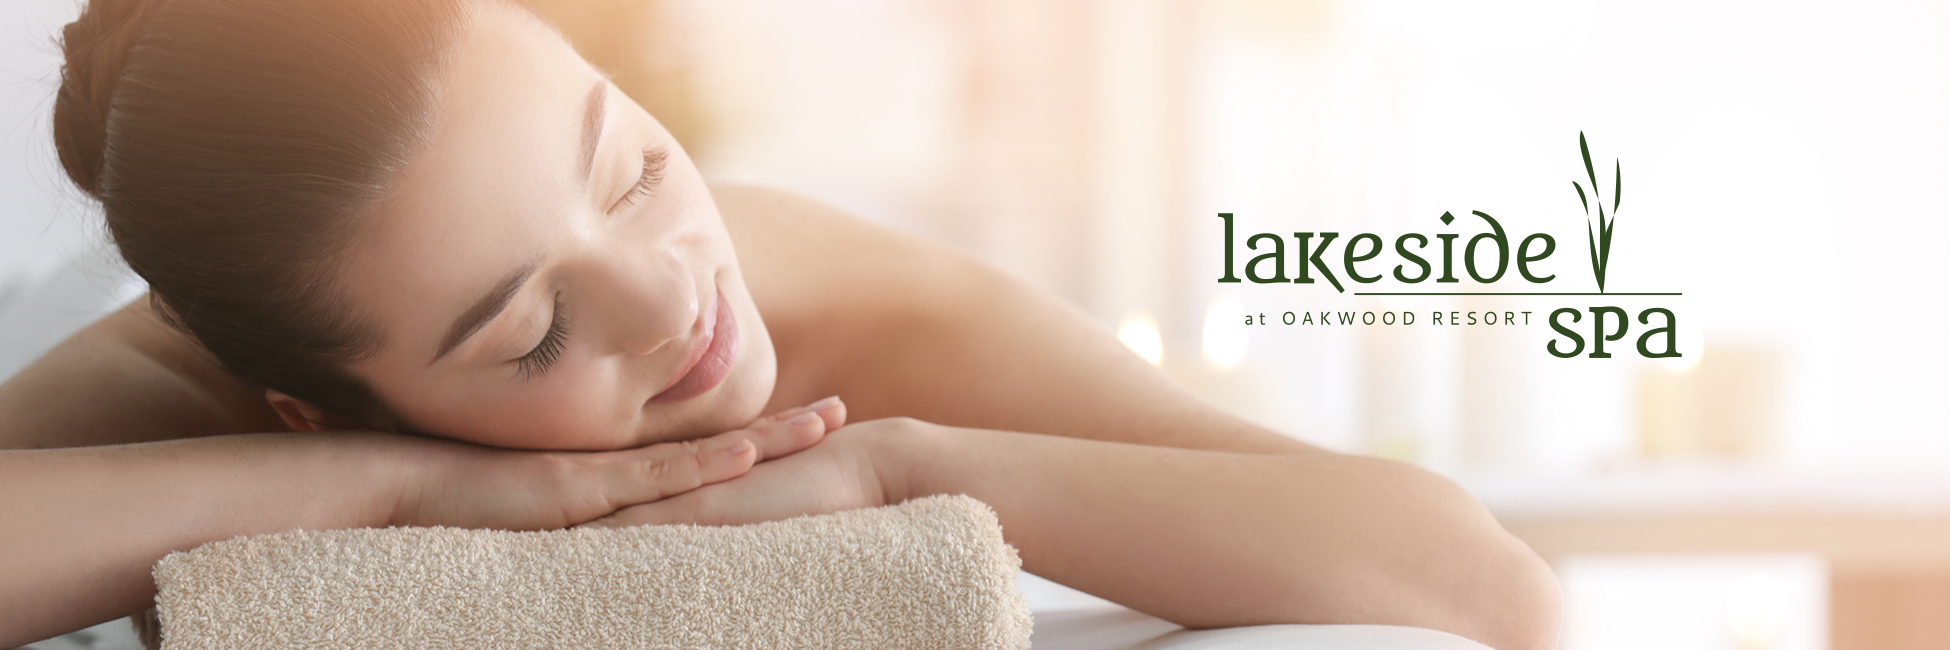 Lakeside Spa Header